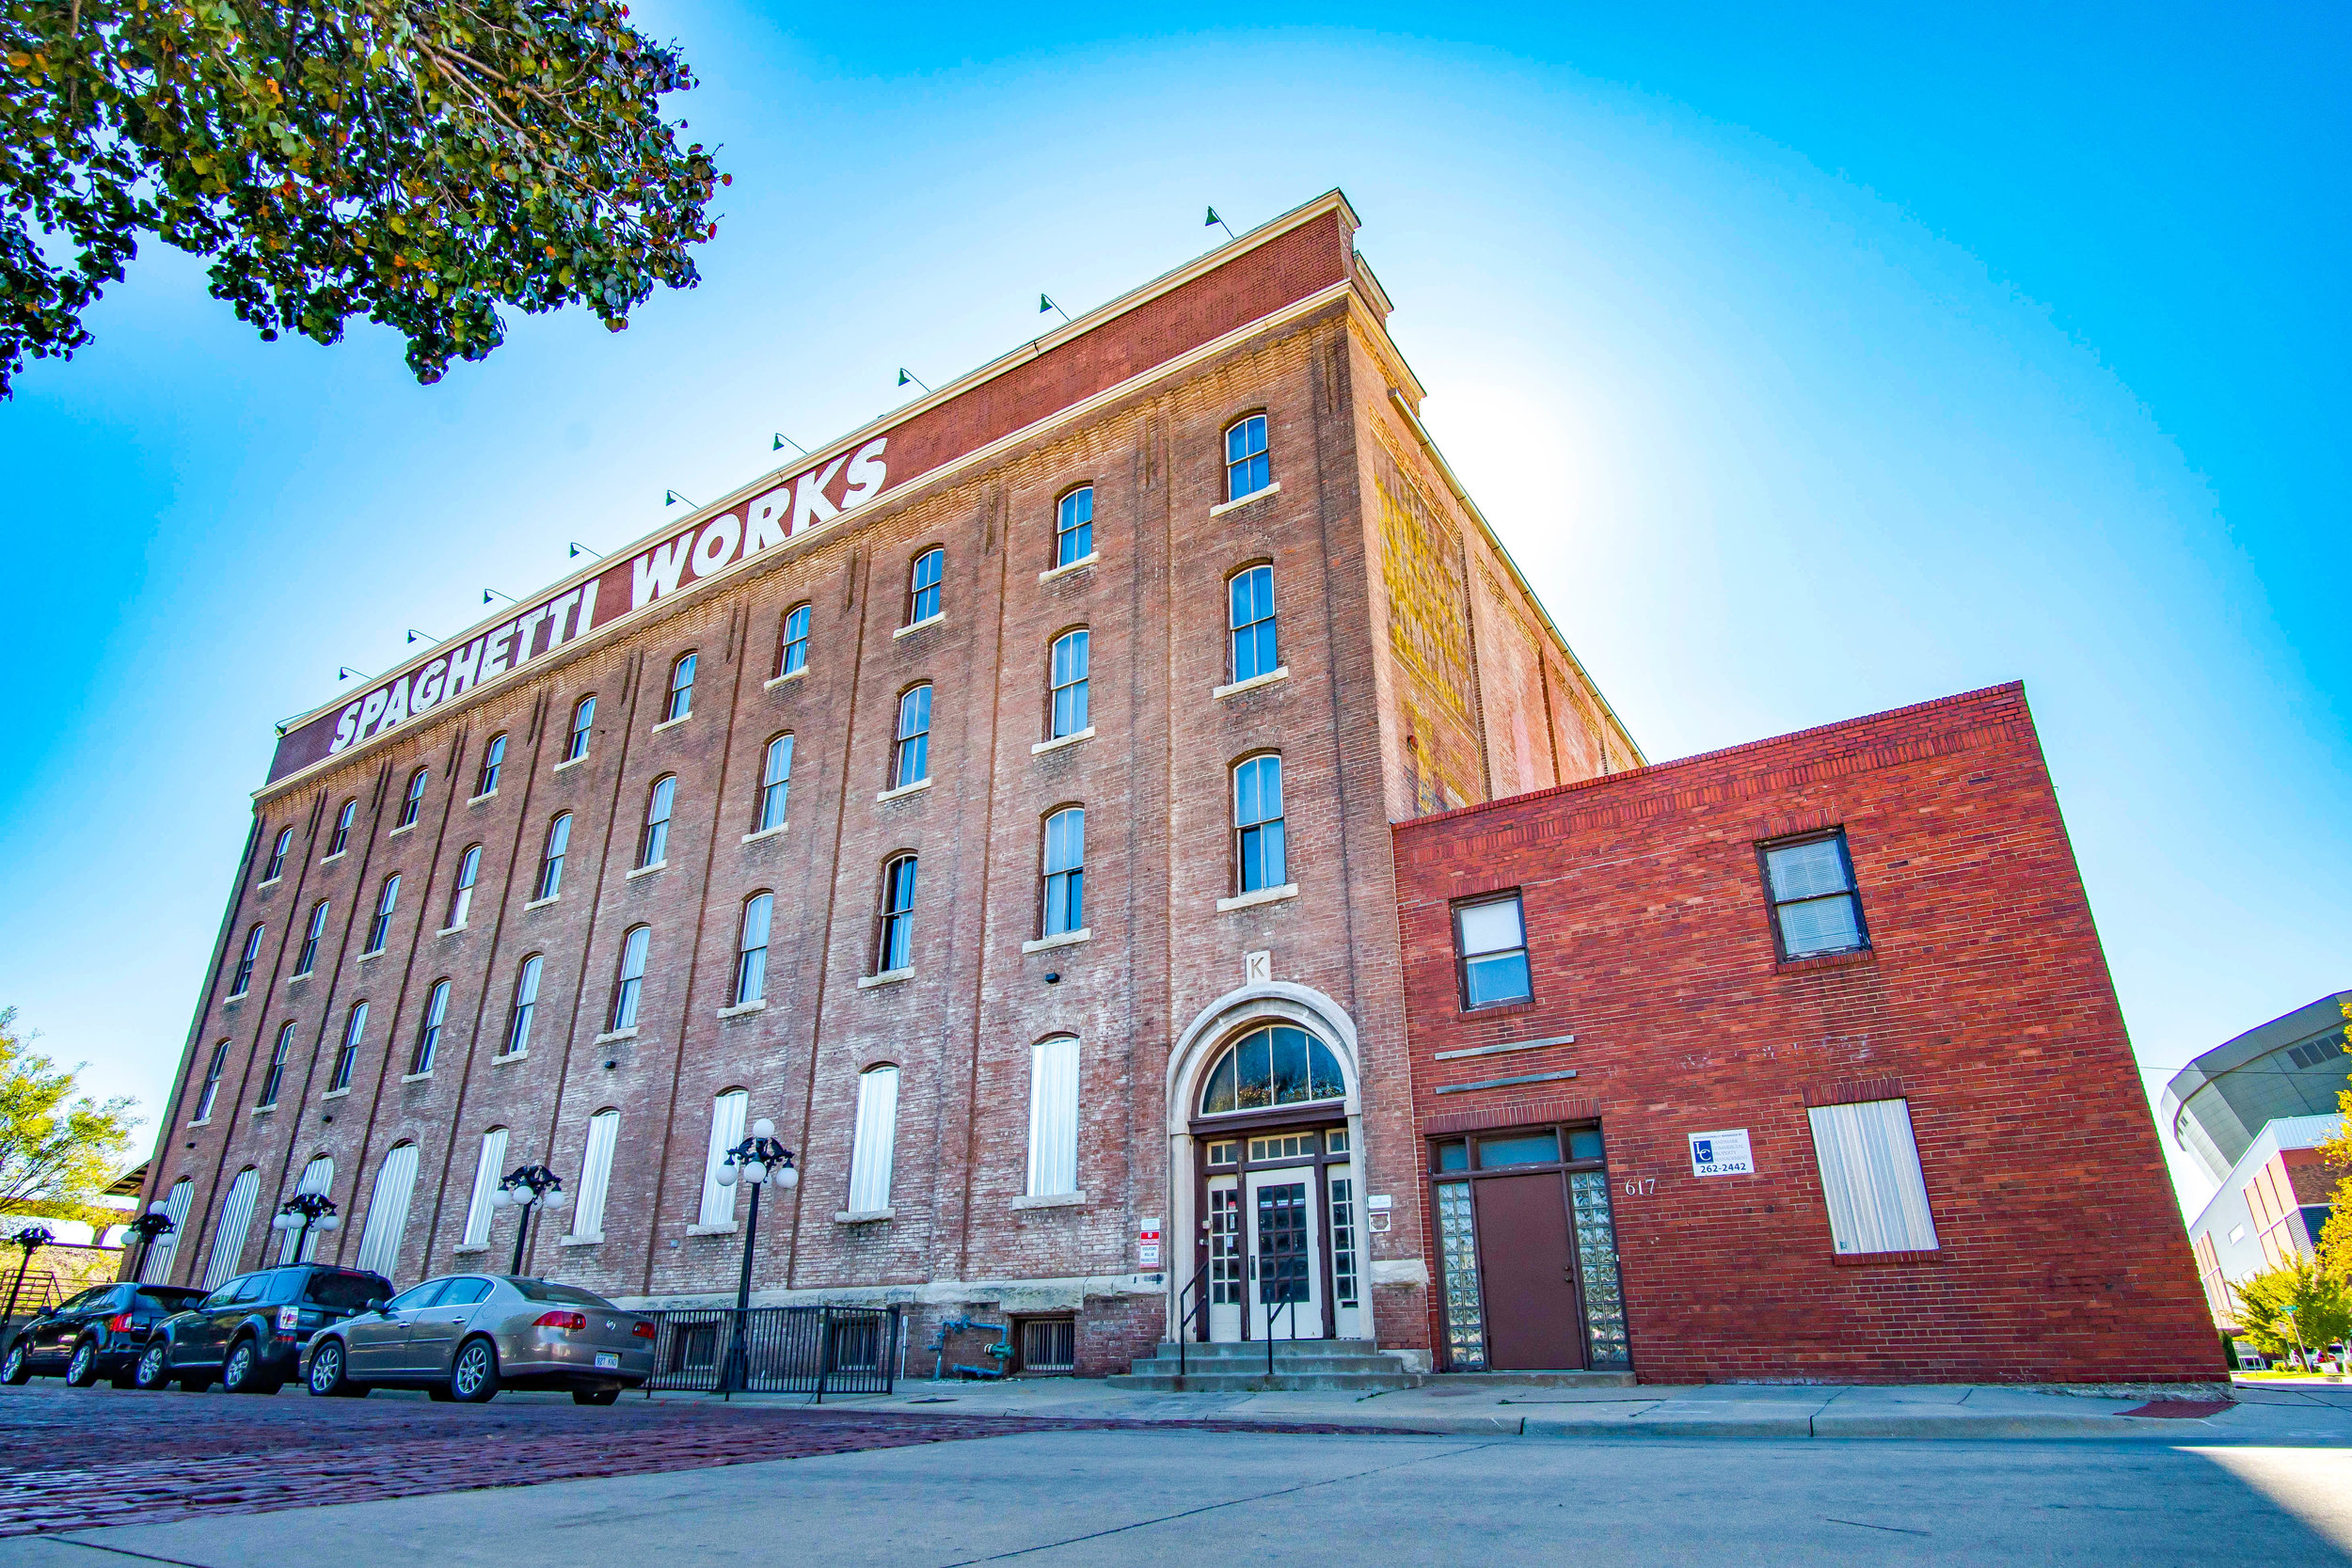 Spaghetti Works - Constructed in 1894, shut down in 2004, and now 2018 brings new life to this iconic structure as a key part of the Spaghetti Works District renovation.Learn More